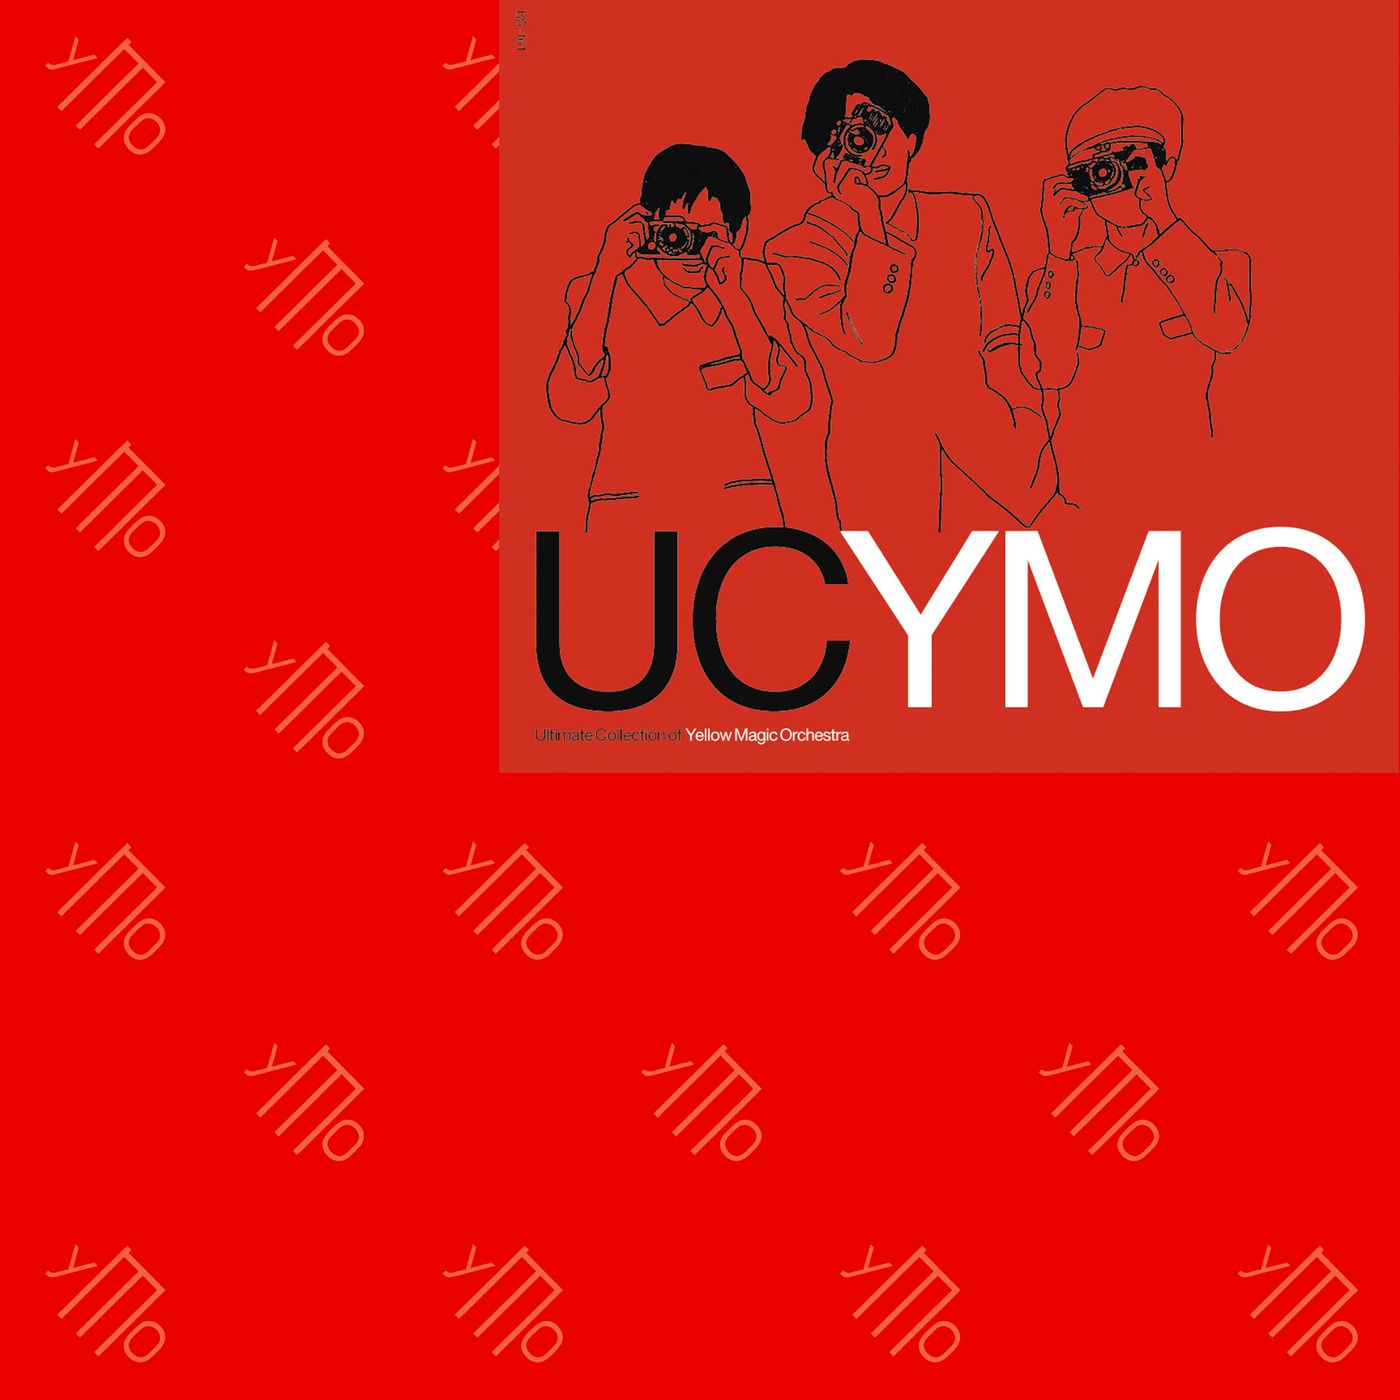 UC YMO: Ultimate Collection of Yellow Magic Orchestra - Yellow Magic Orchestra